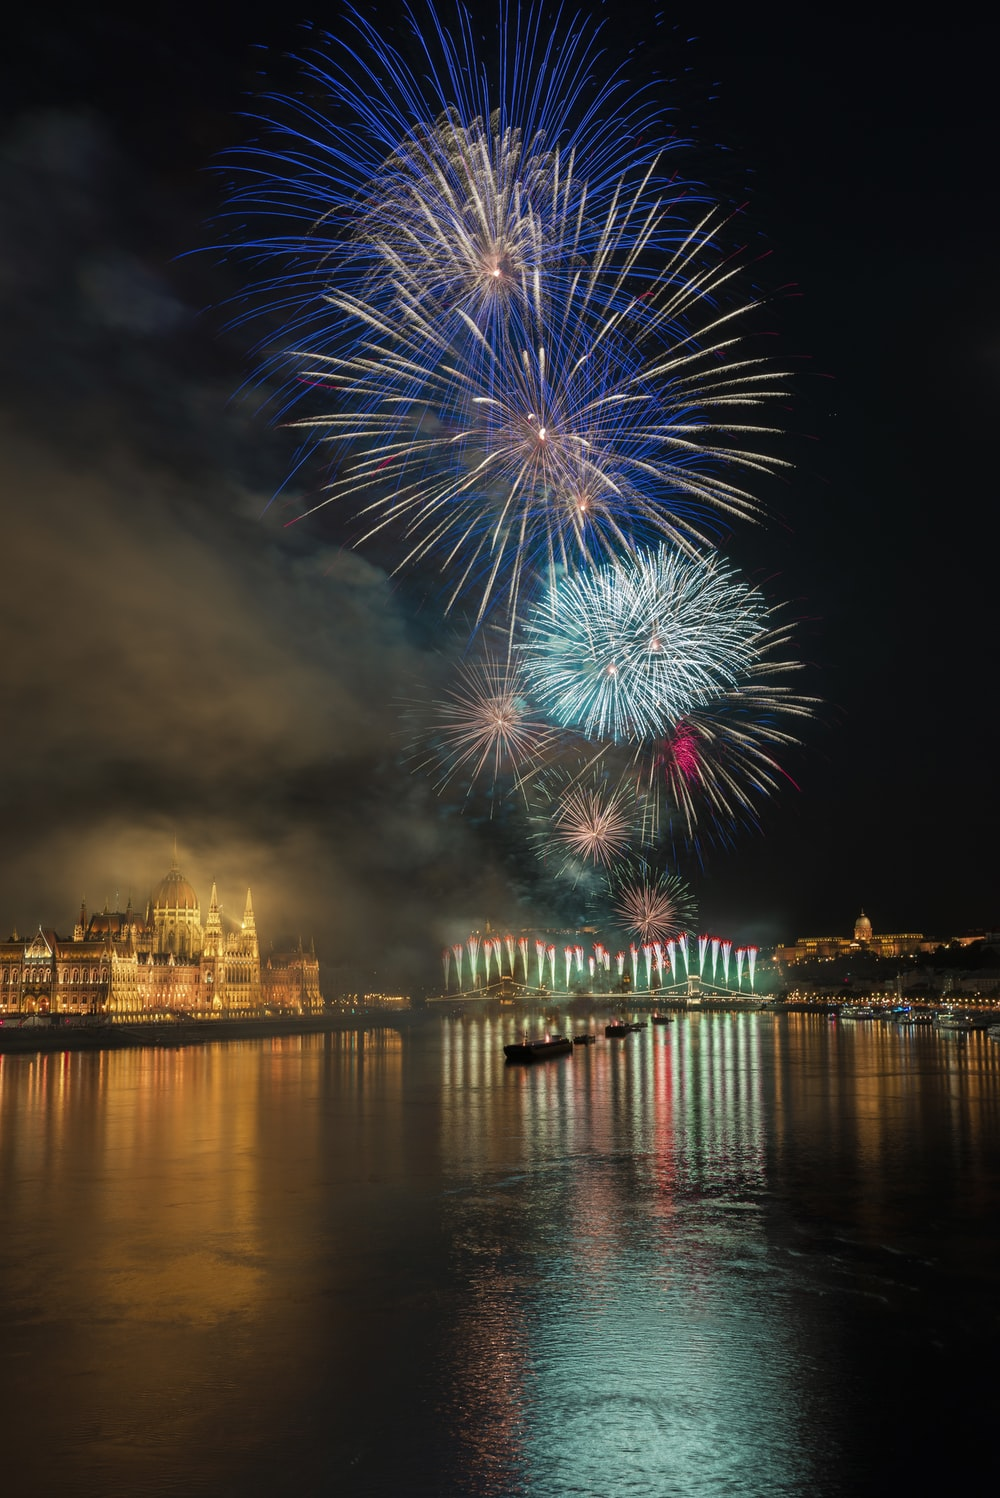 photo of fireworks above body of water